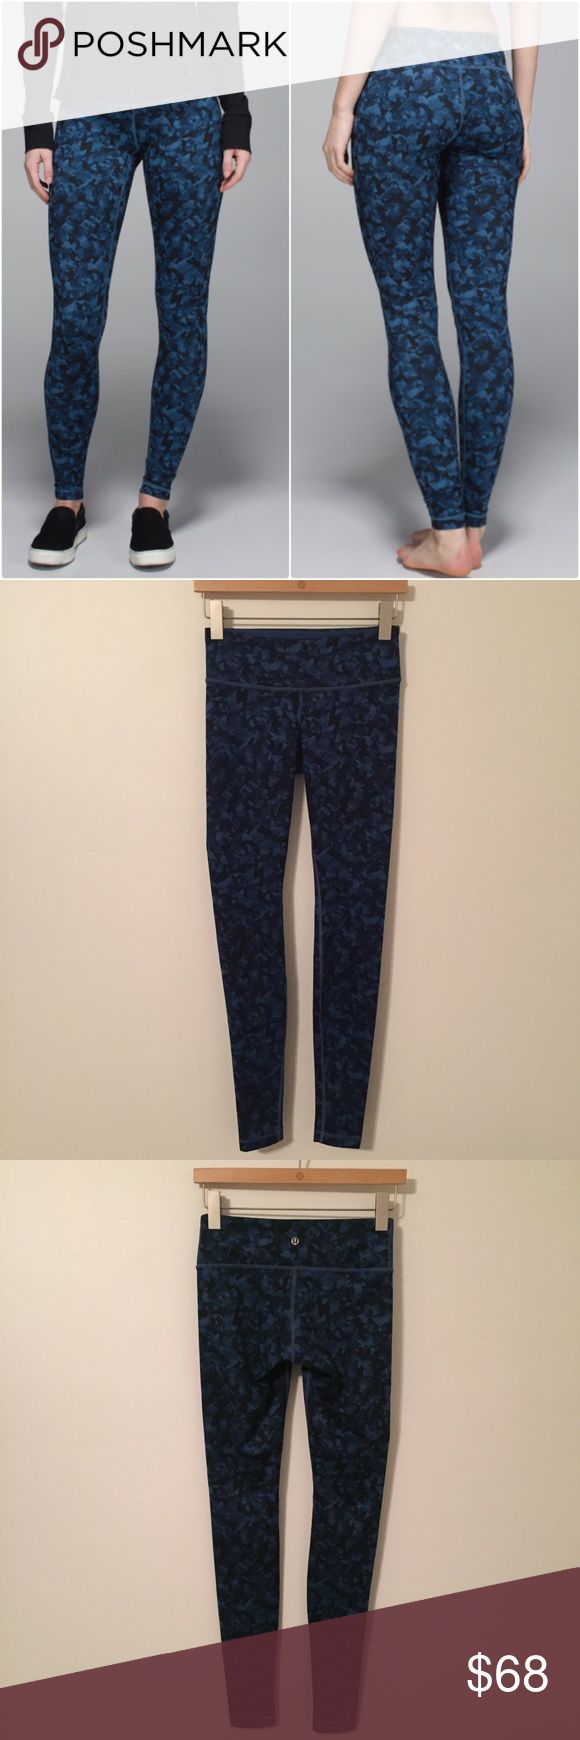 Lululemon Wunder Under Pant Lululemon Wunder Under Pant in the color called Mystic jungle hawk blue/harbour blue, size 4, great condition with no flaws. Bundle to save 10% off ❤️ lululemon athletica Pants Leggings